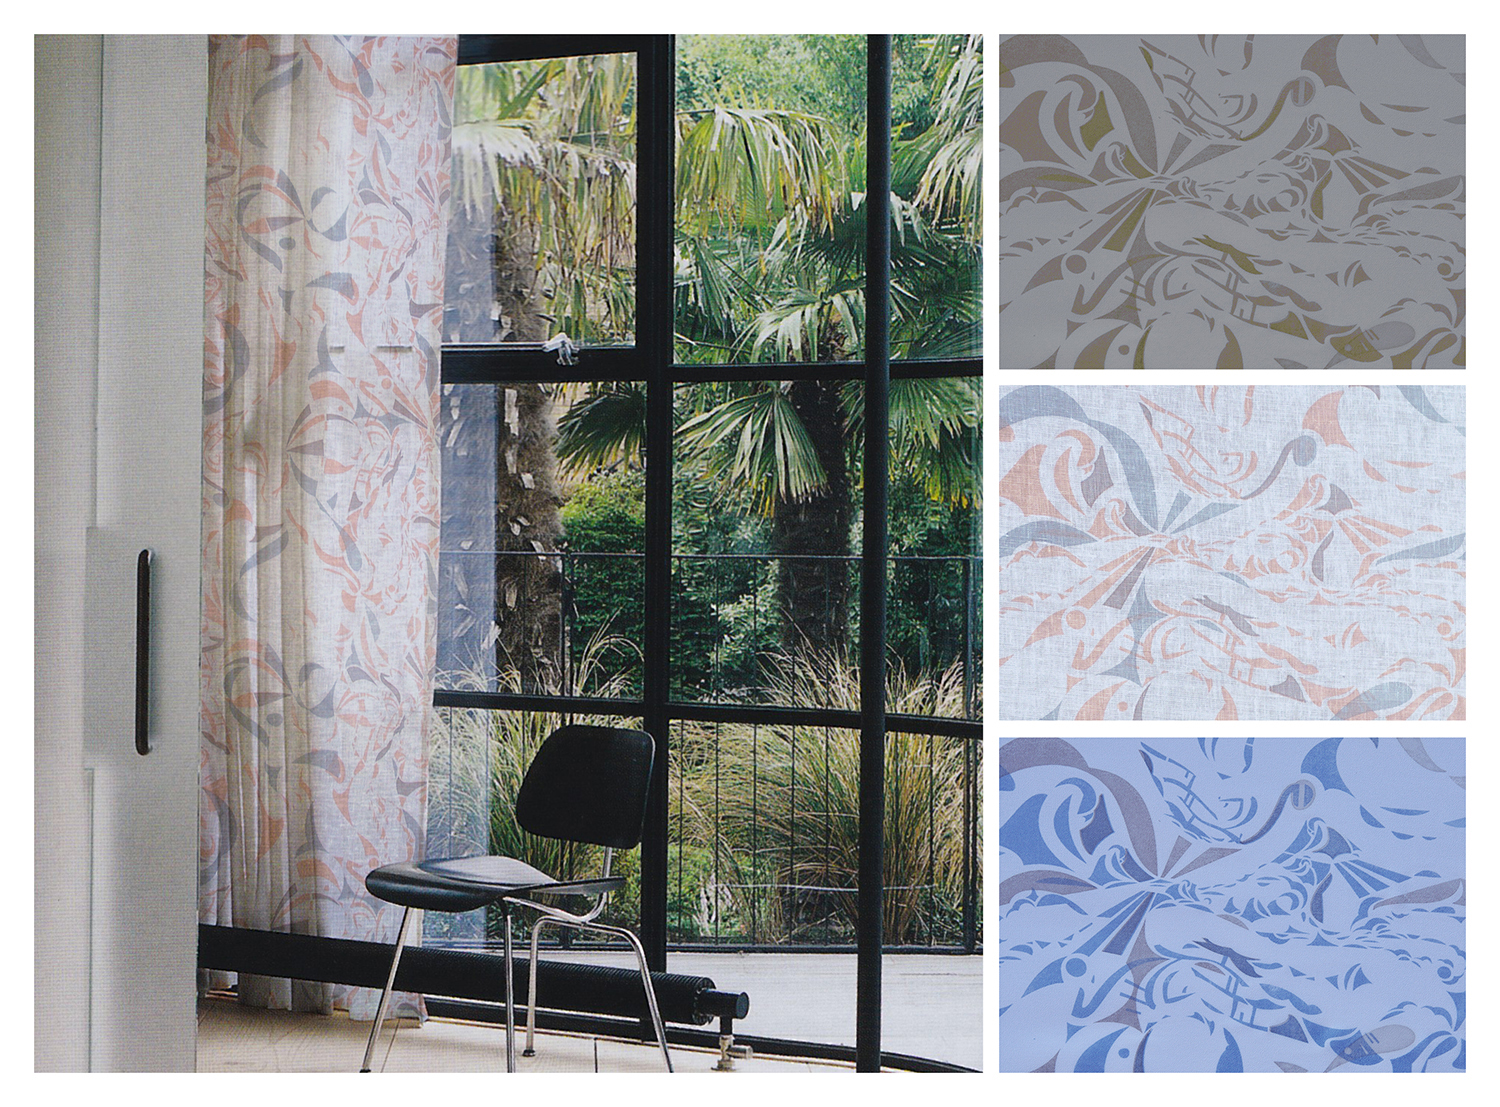 SEA   Shown in room, with details and colorways, hand screen-printed on light-weight fabric